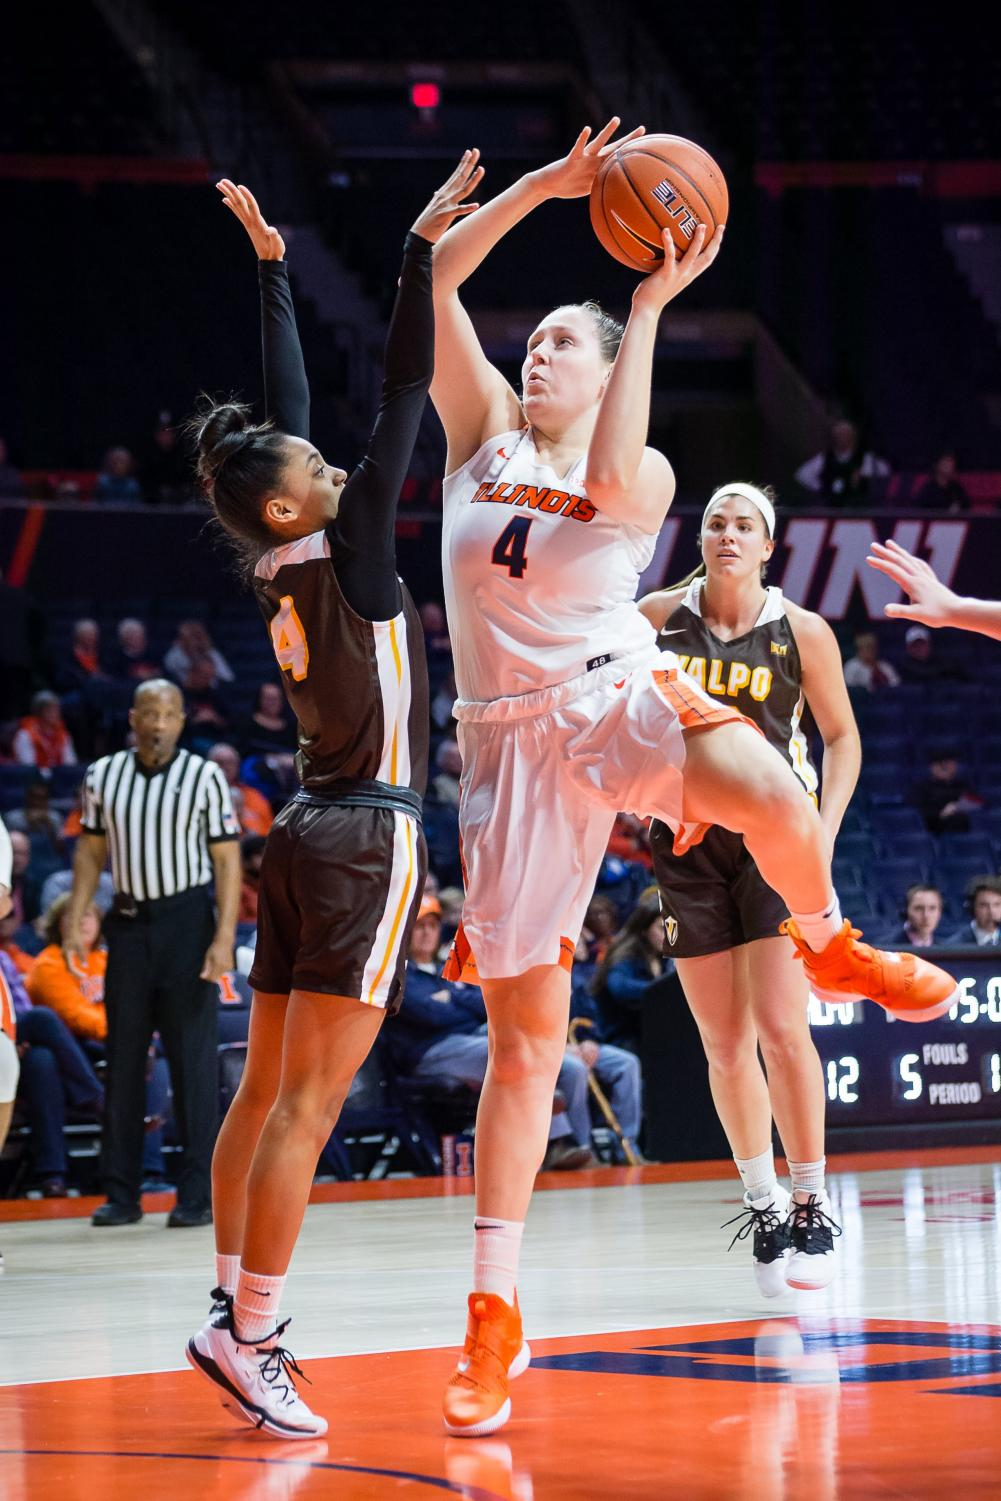 Illinois forward Mackenzie Blazek (4) jumps up to shoot the ball during the game against Valparaiso at State Farm Center on Wednesday, Nov. 14. The Illini won 73-54.